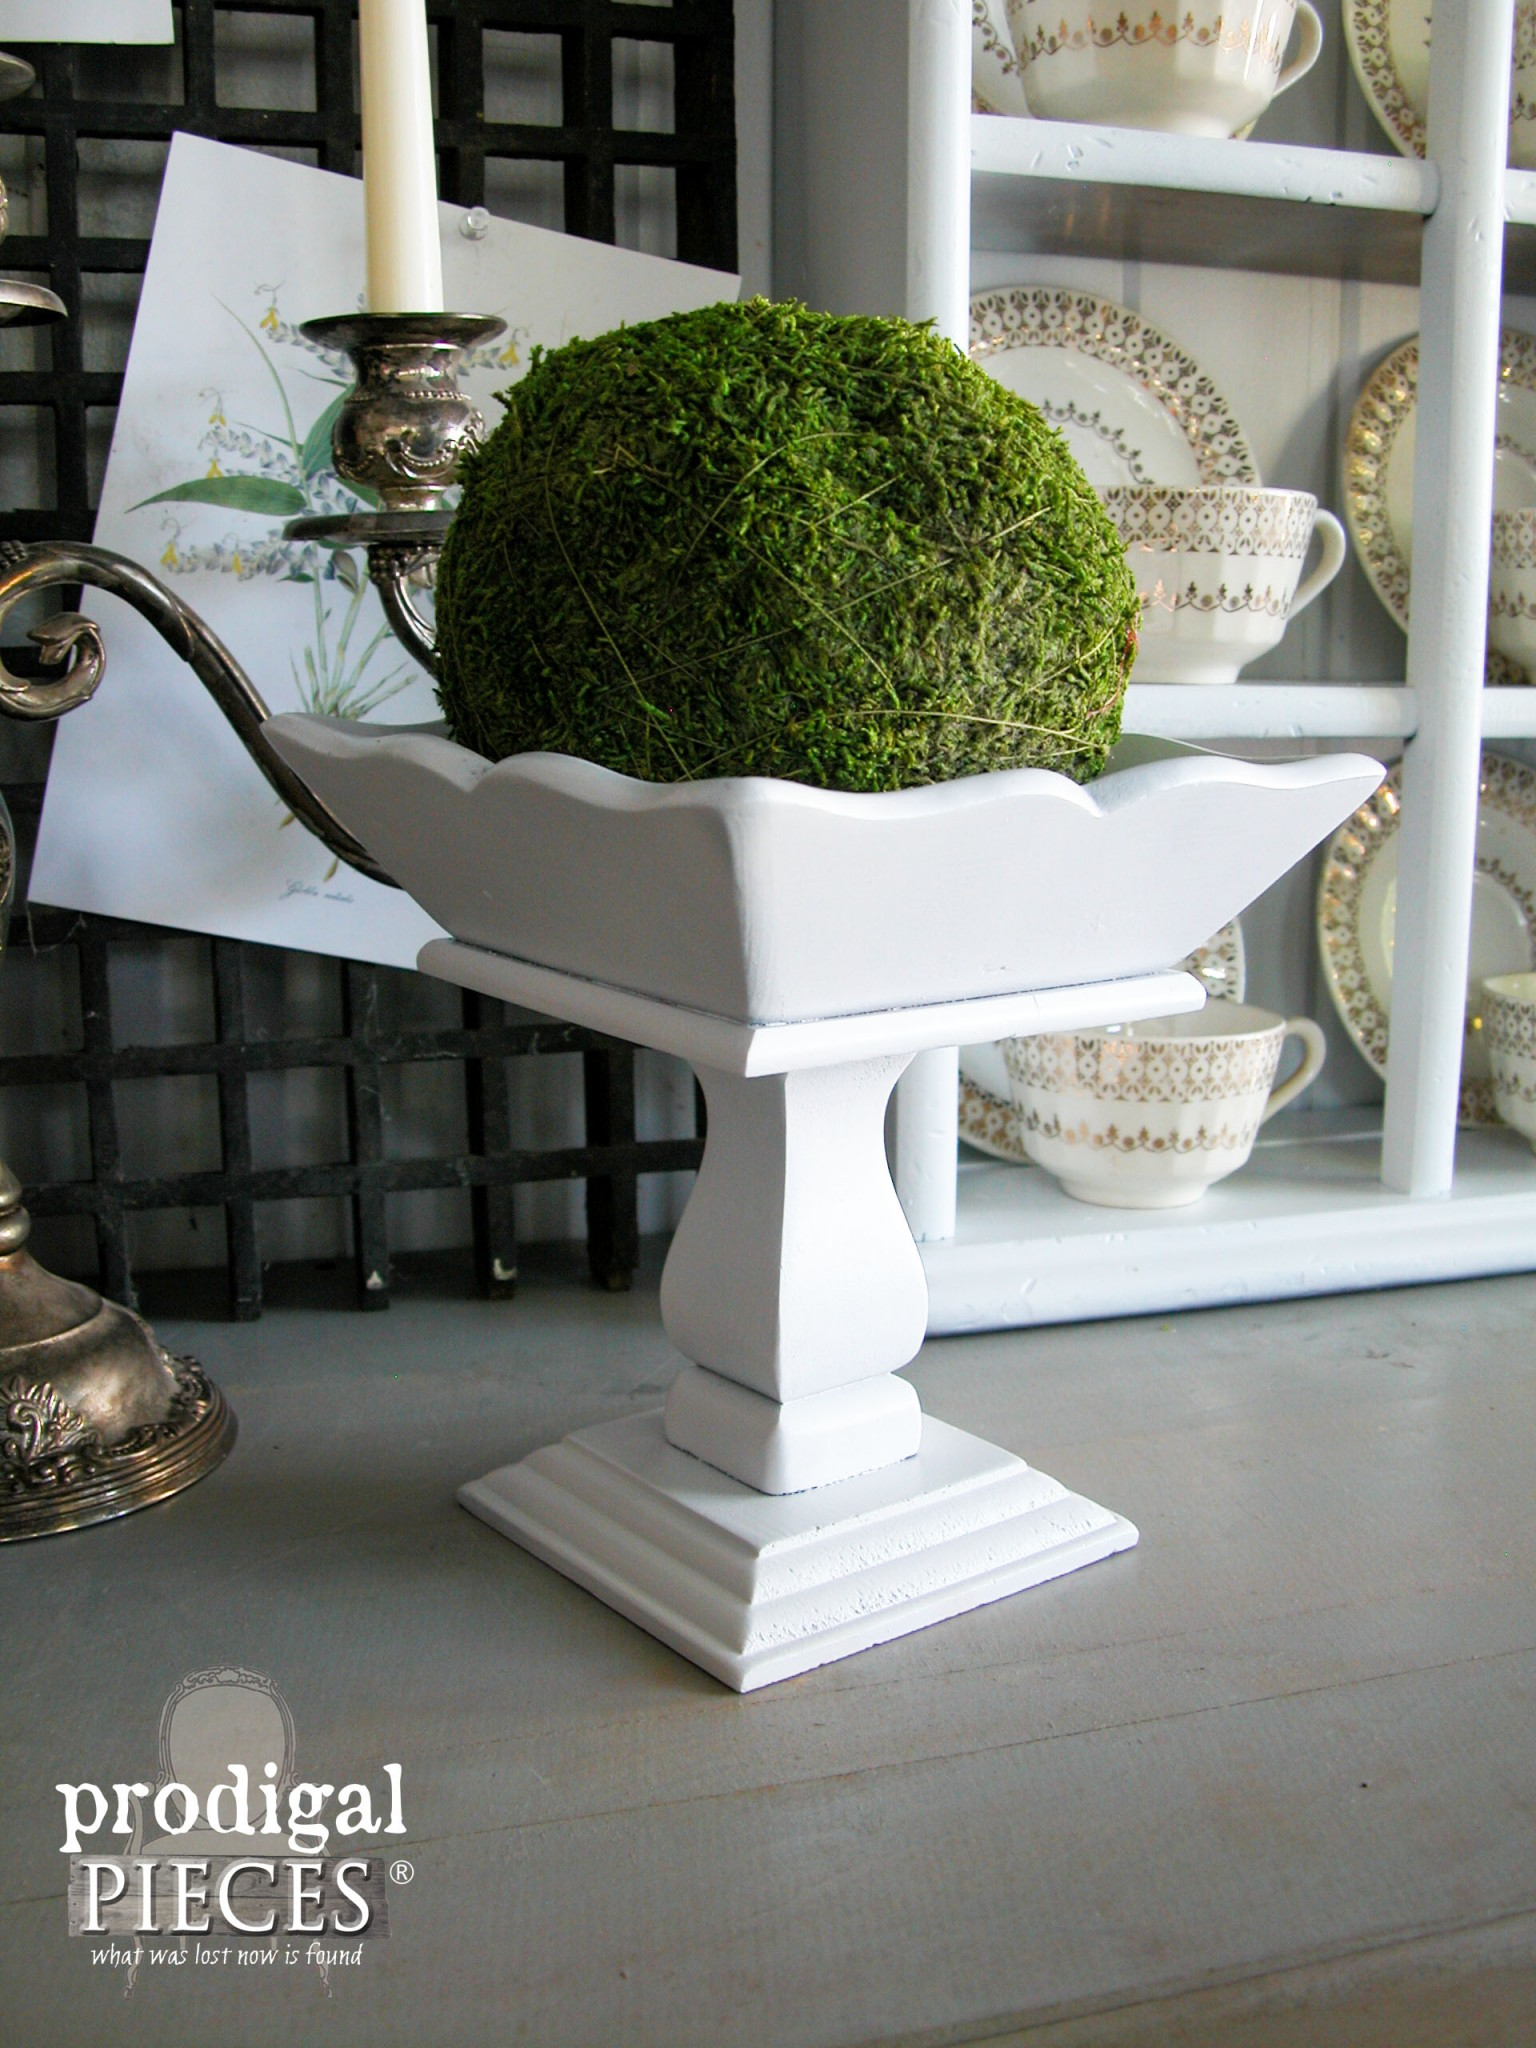 Handmade Wooden Pedestal Made New with Paint by Prodigal Pieces | www.prodigalpieces.com